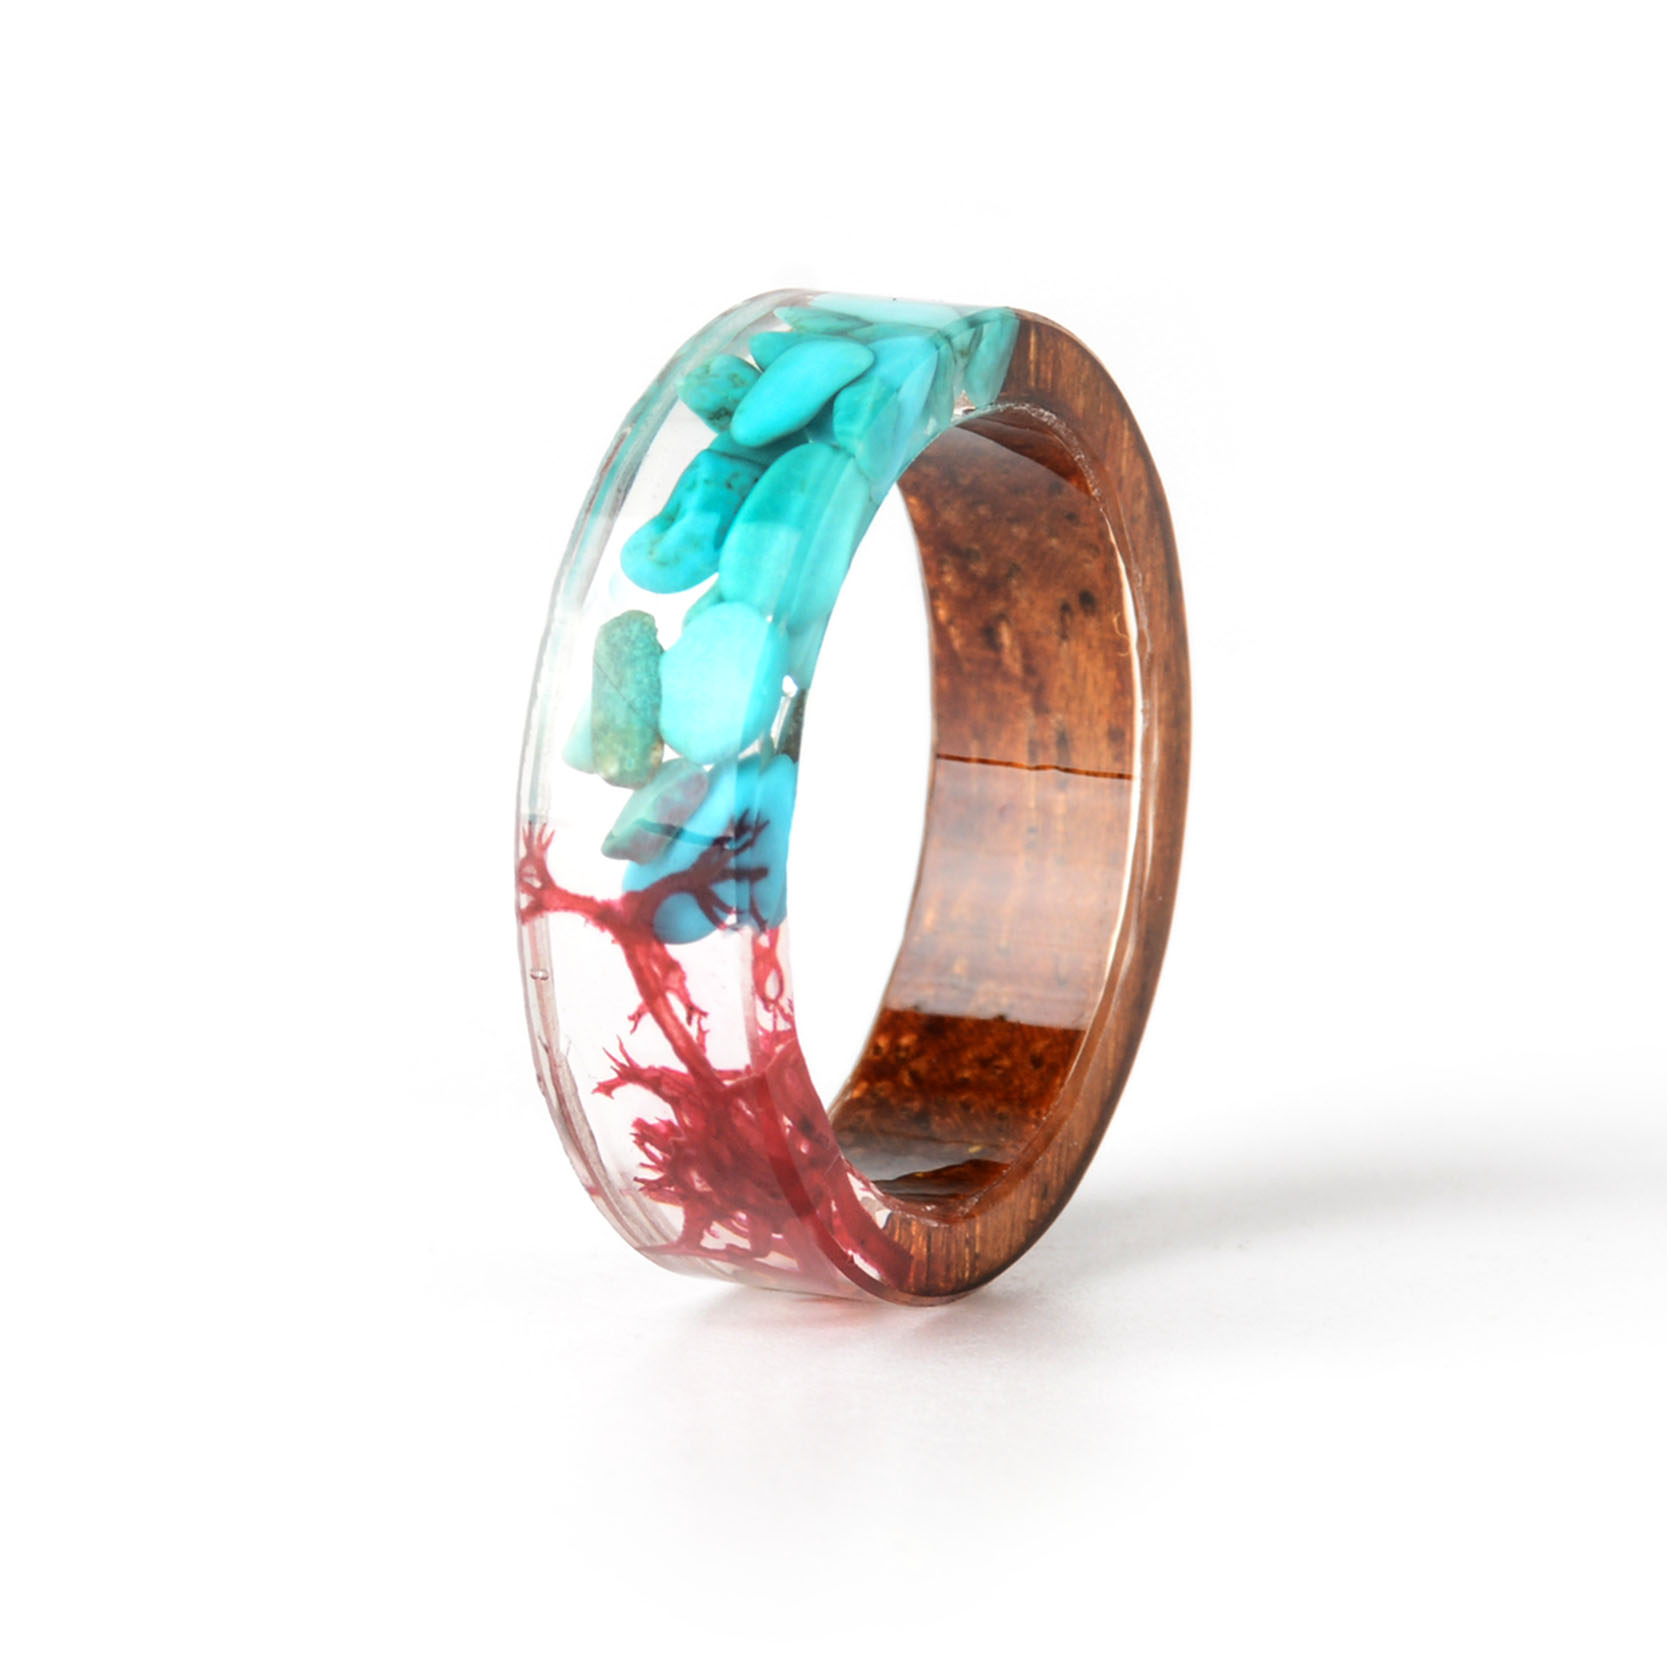 HTB1SBkZc56guuRkSmLyq6AulFXa9 - Hot Sale Handmade Wood Resin Ring Dried Flowers Plants Inside Jewelry Resin Ring Transparent Anniversary Ring for Women